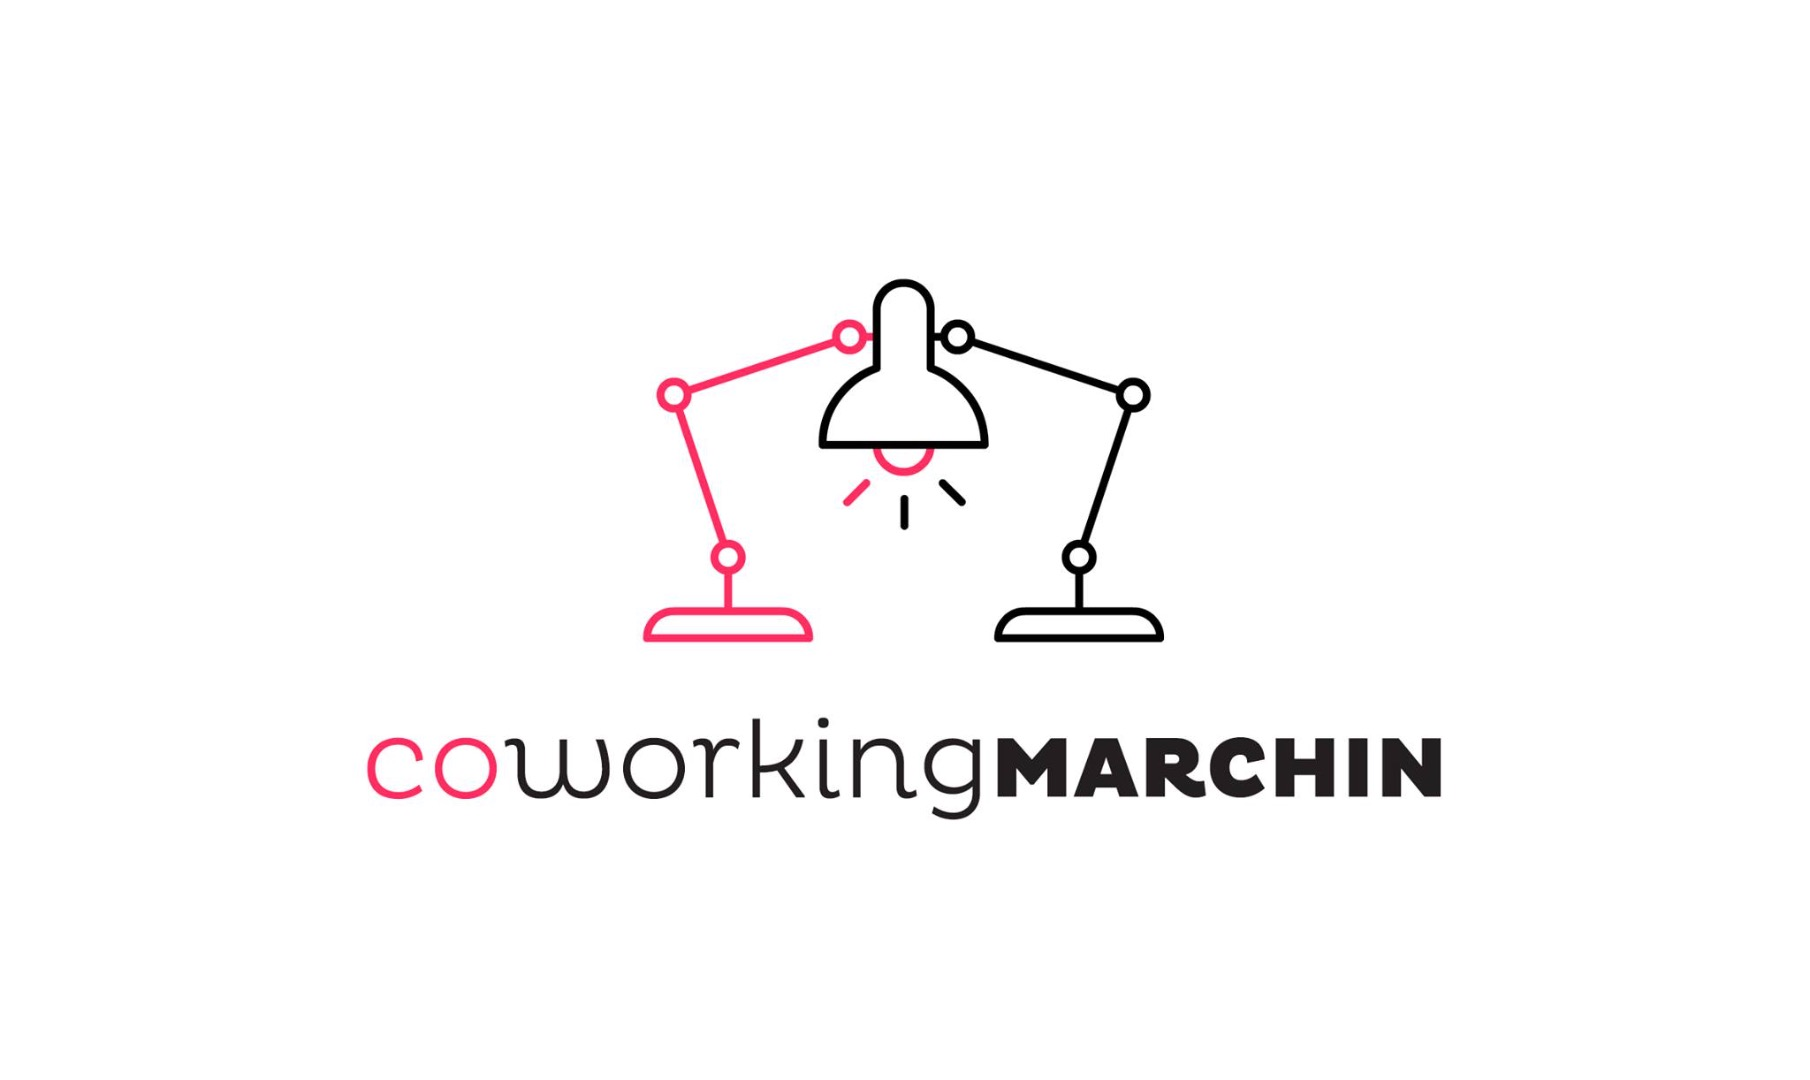 Coworking Marchin (CoLab)